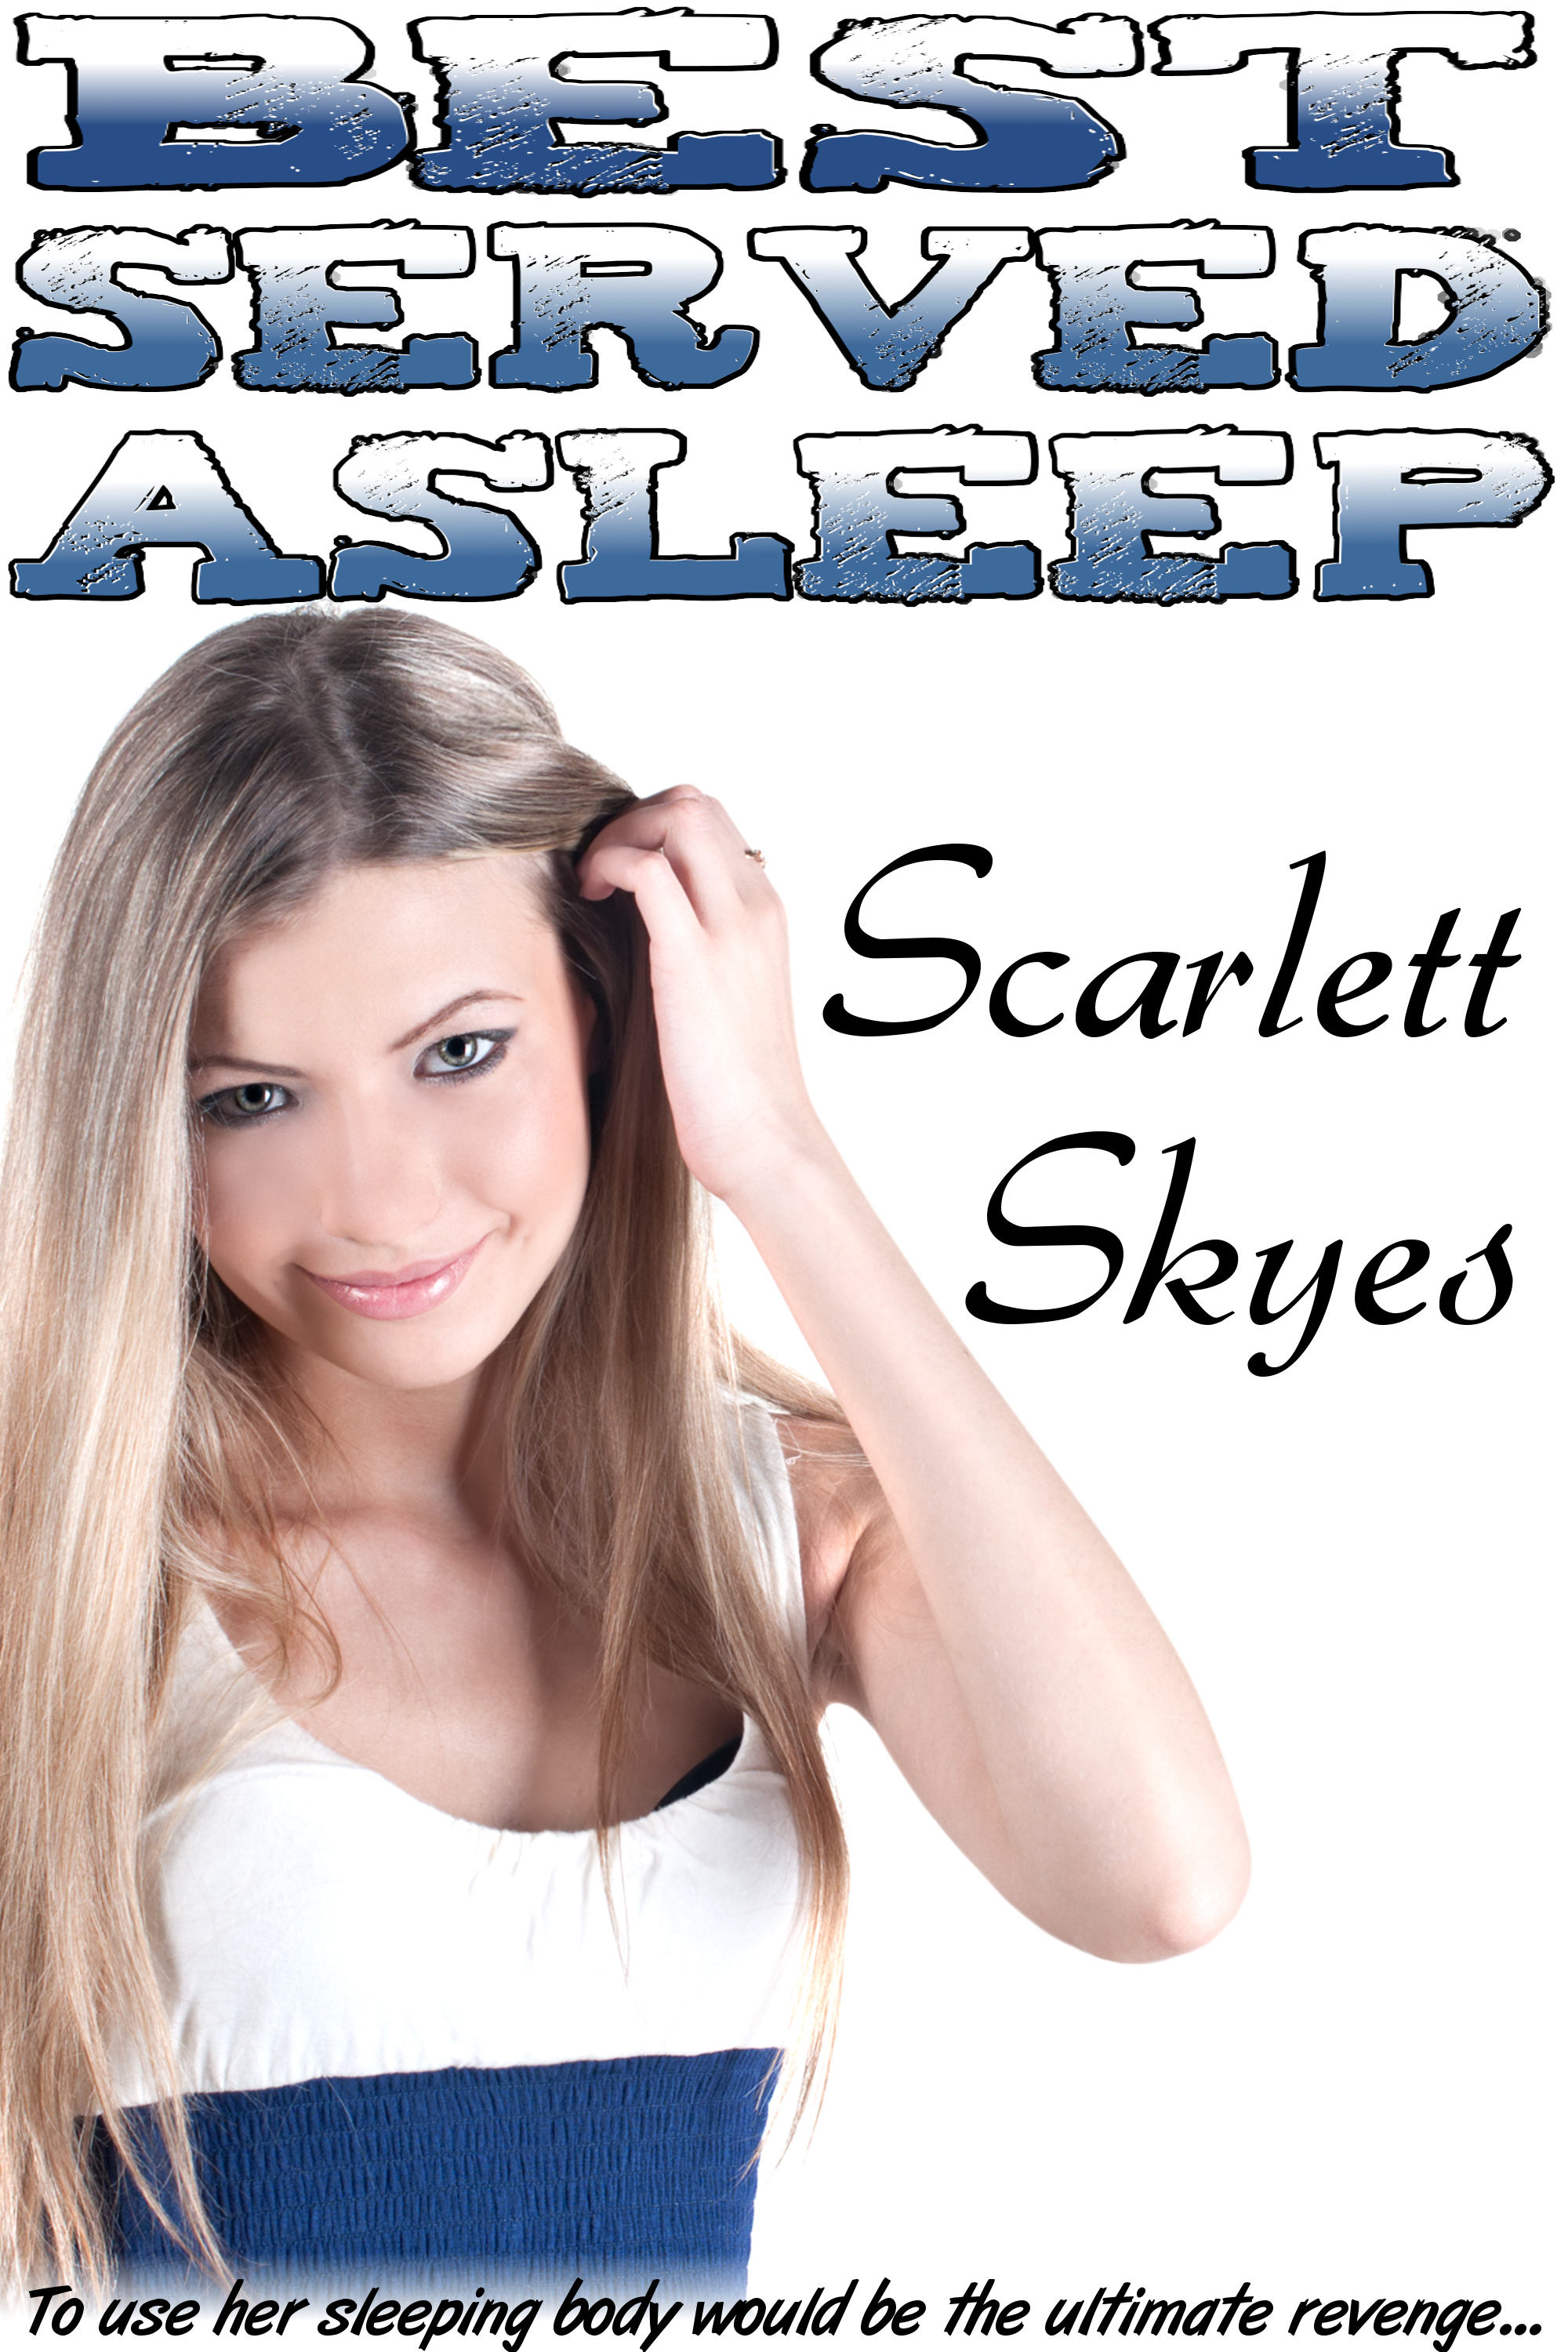 CLIT full version download sleep teen plz